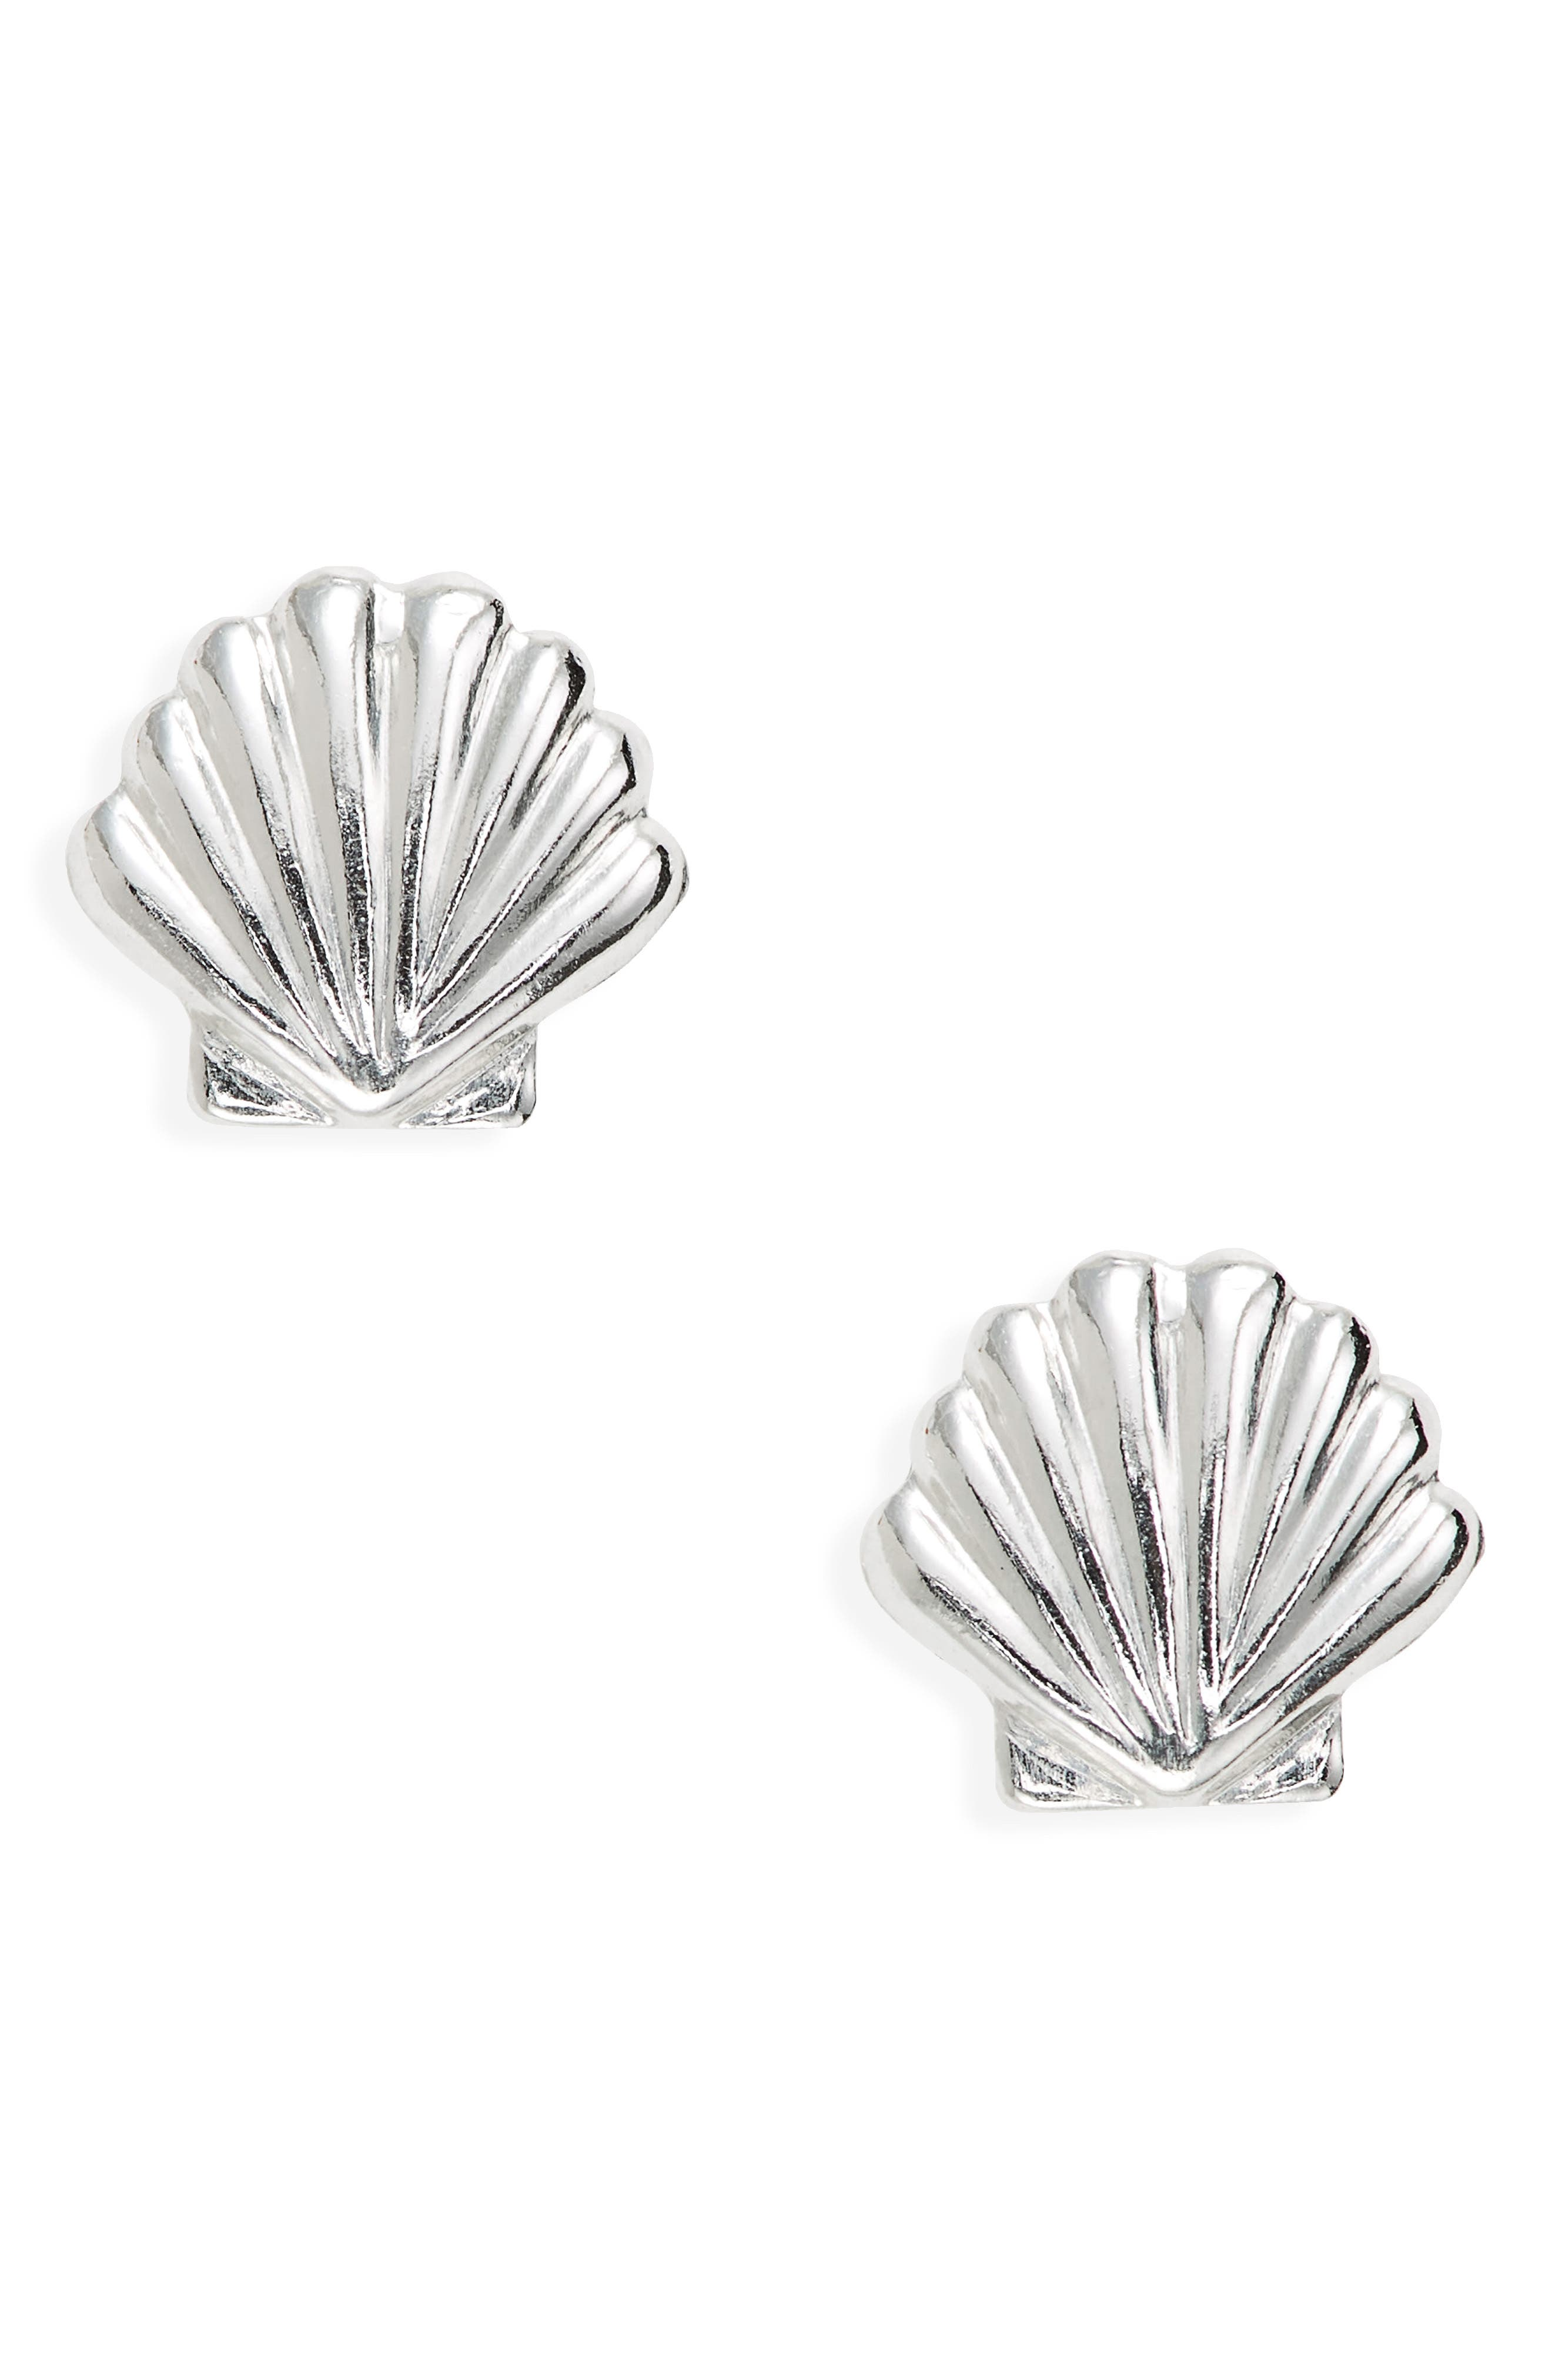 Shiny seashells beckon smiles in these small studs that are made in the USA. Style Name: Set & Stones Sawyer Shell Stud Earrings. Style Number: 6093926. Available in stores.